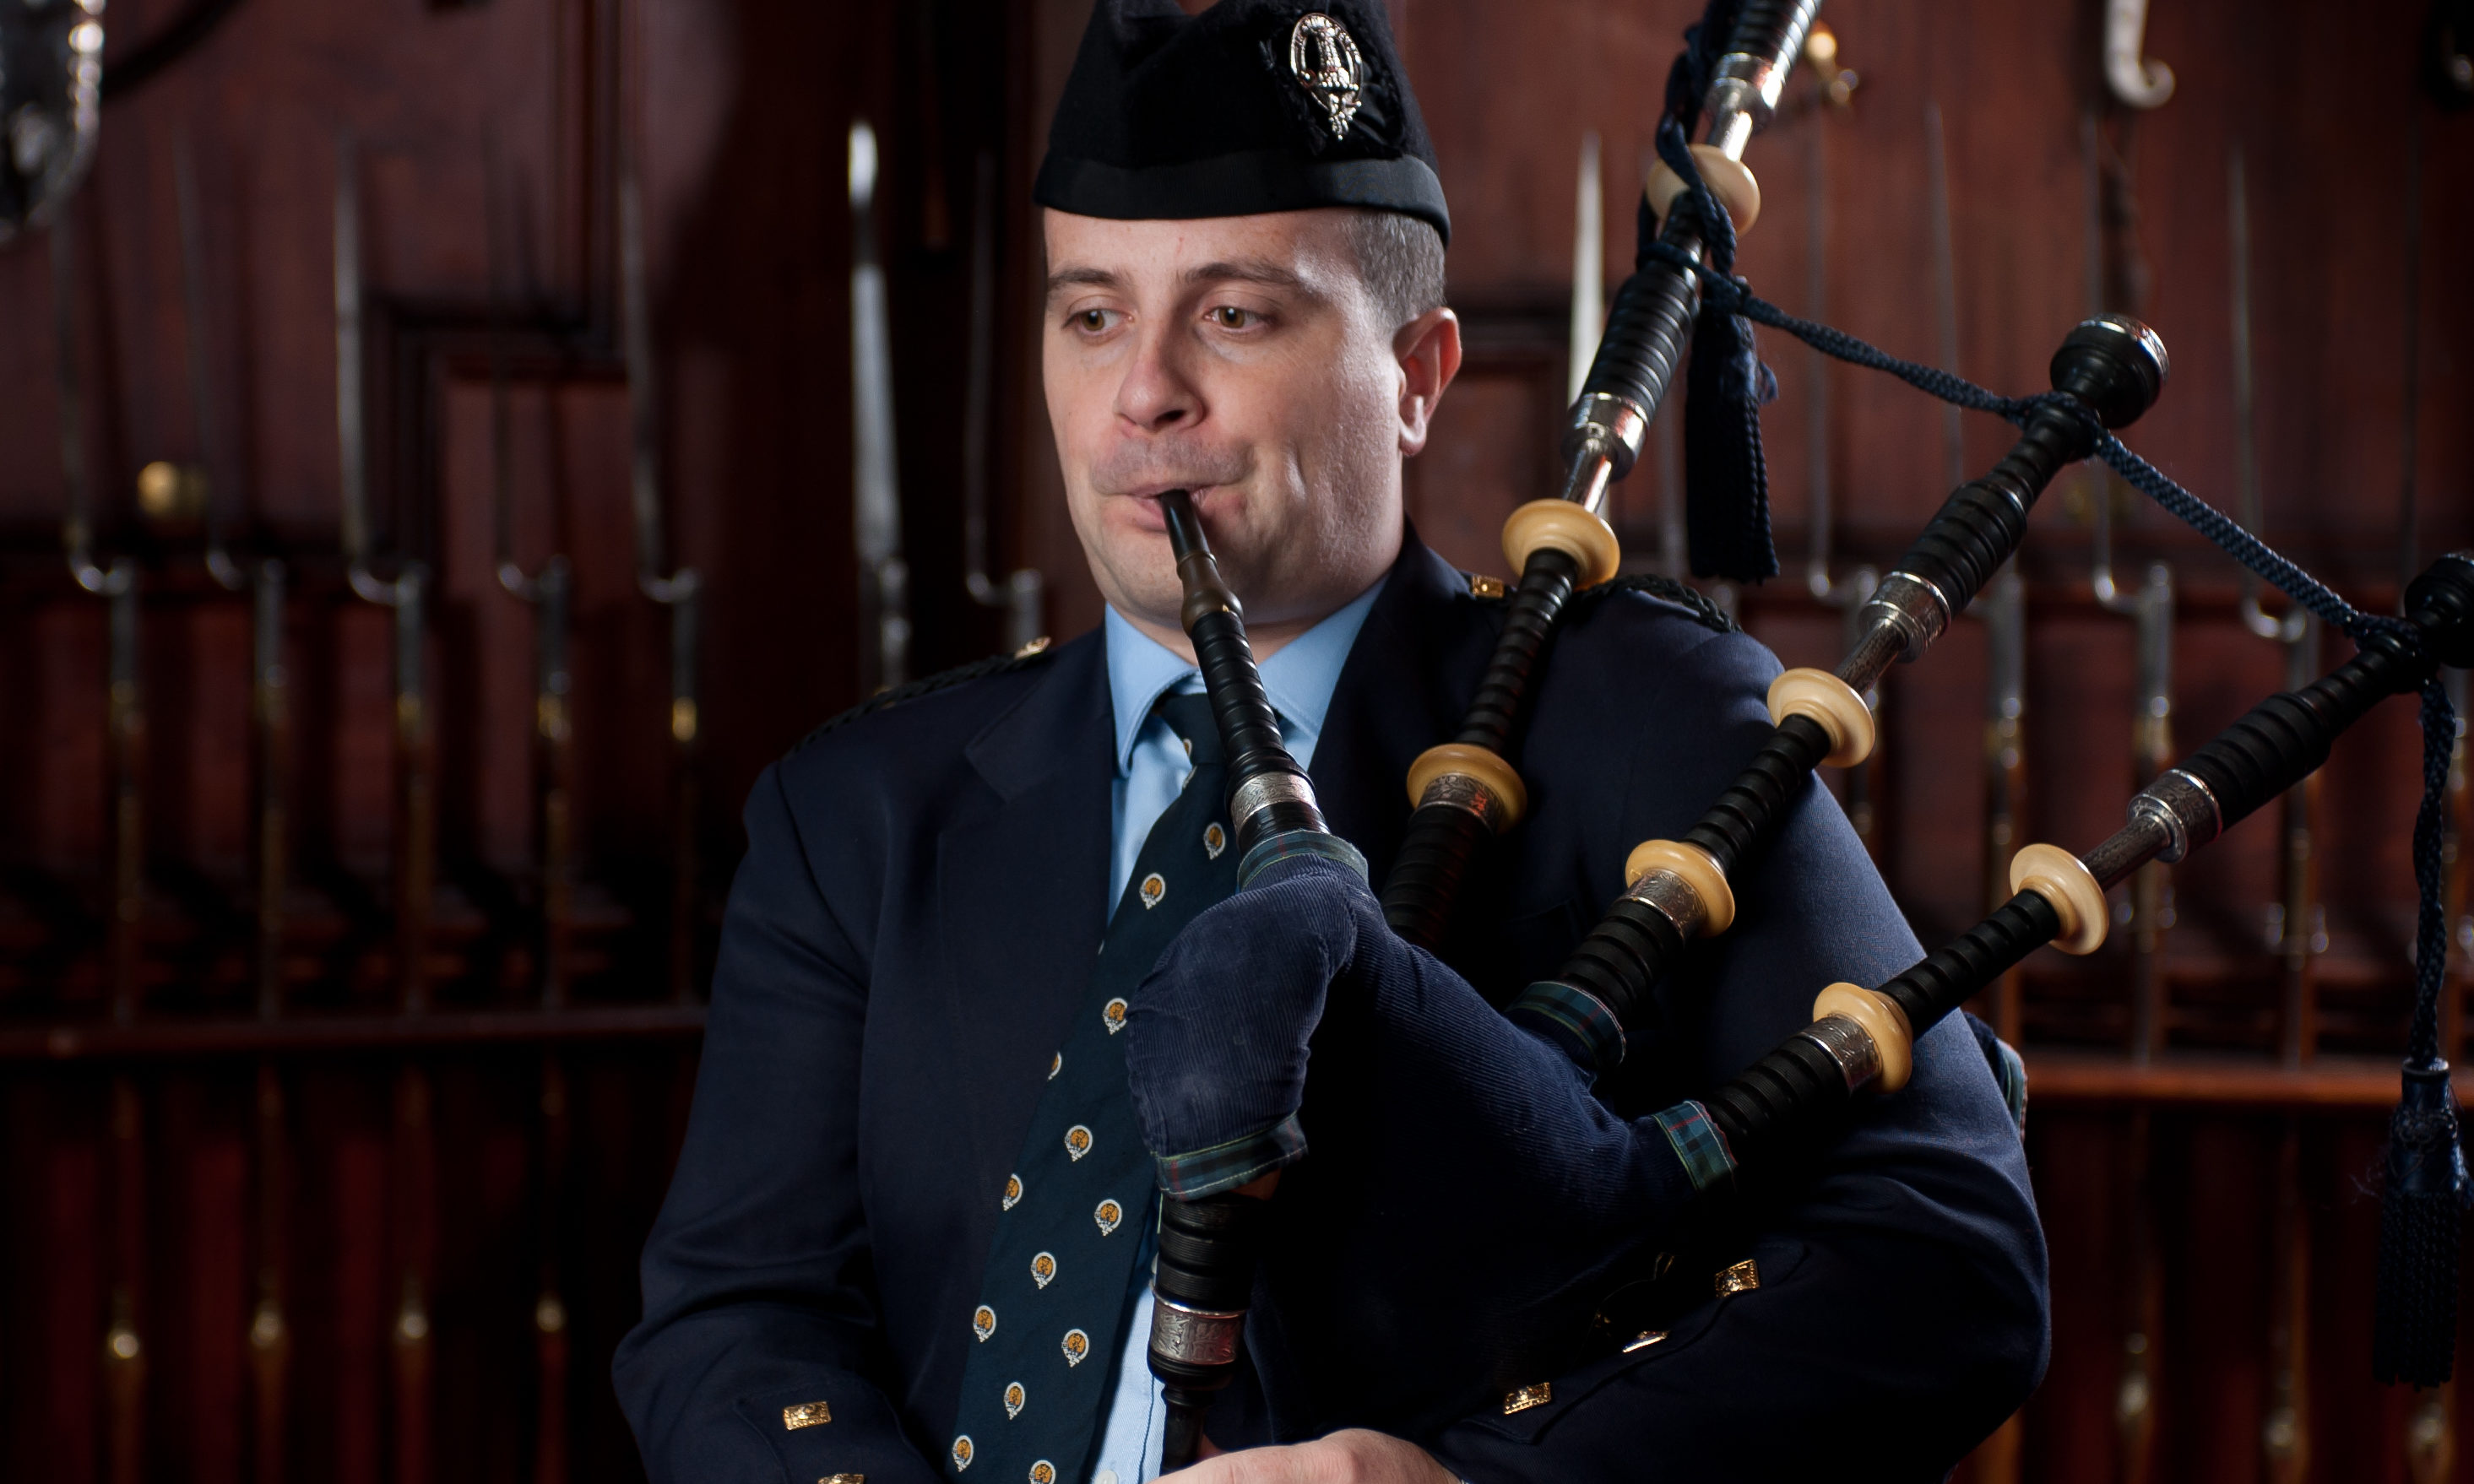 Finlay Johnston clinched victory at the 46th Glenfiddich Piping Championship